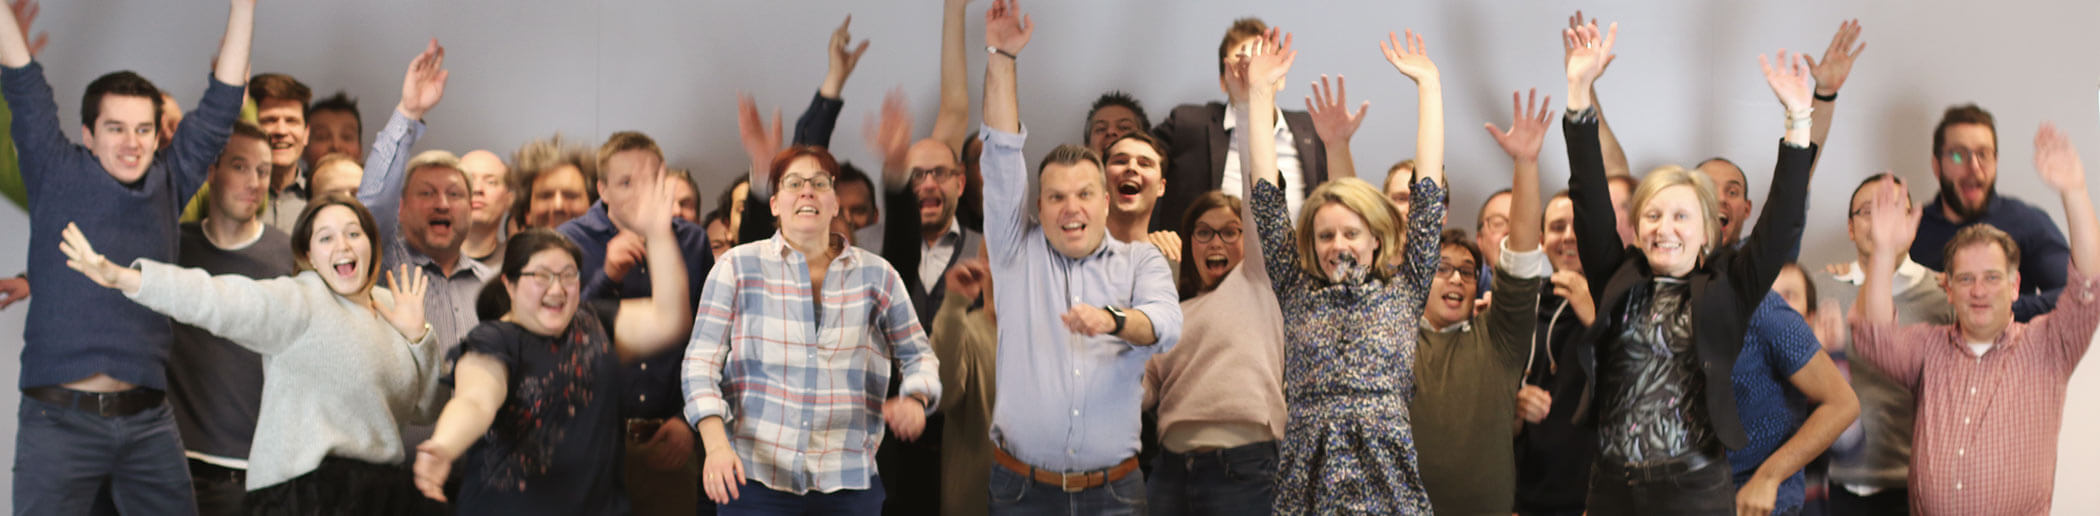 The Scriptura Engage team jumps in the air of hapiness